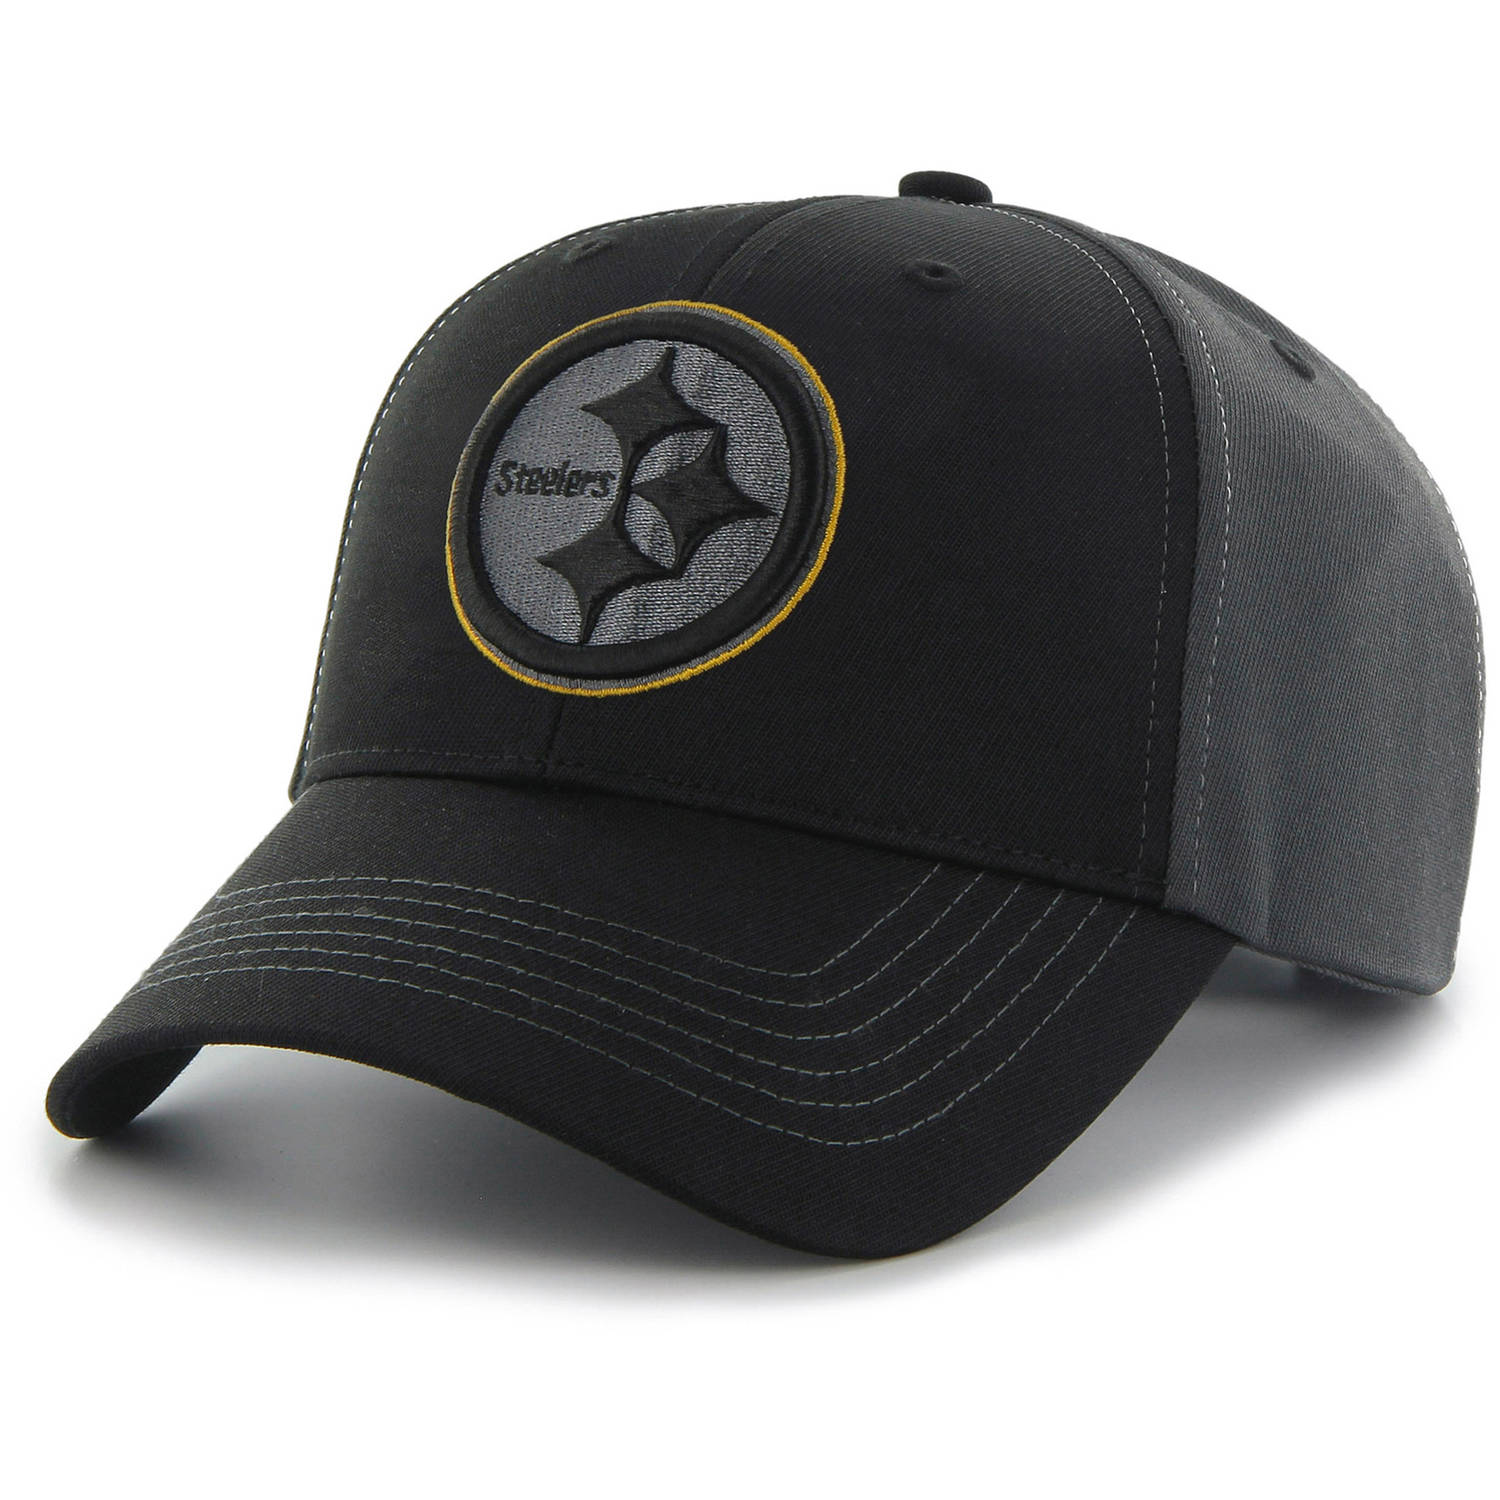 NFL Pittsburgh Steelers Mass Blackball Cap - Fan Favorite